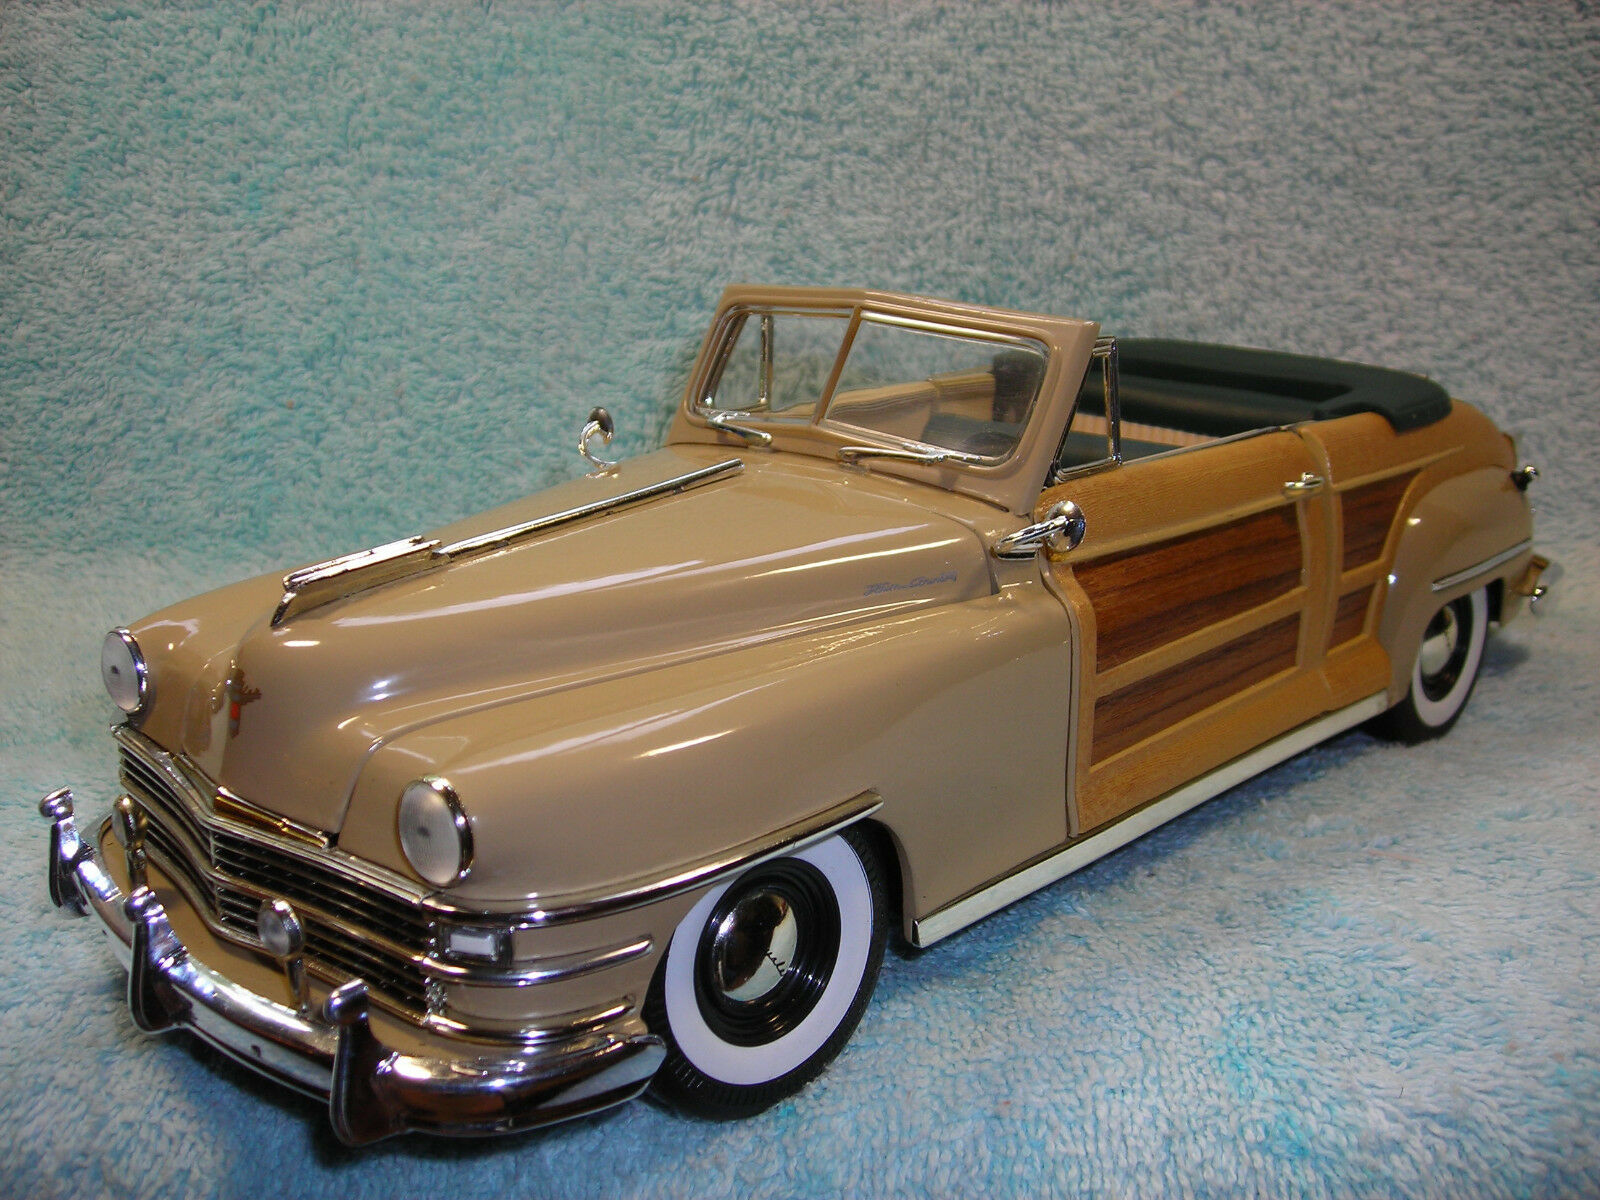 1 18 1948 CRYSLER T&C CABRIO IN CATALINA TAN\REAL WOOD BY MOTOR CITY CLASSICS.